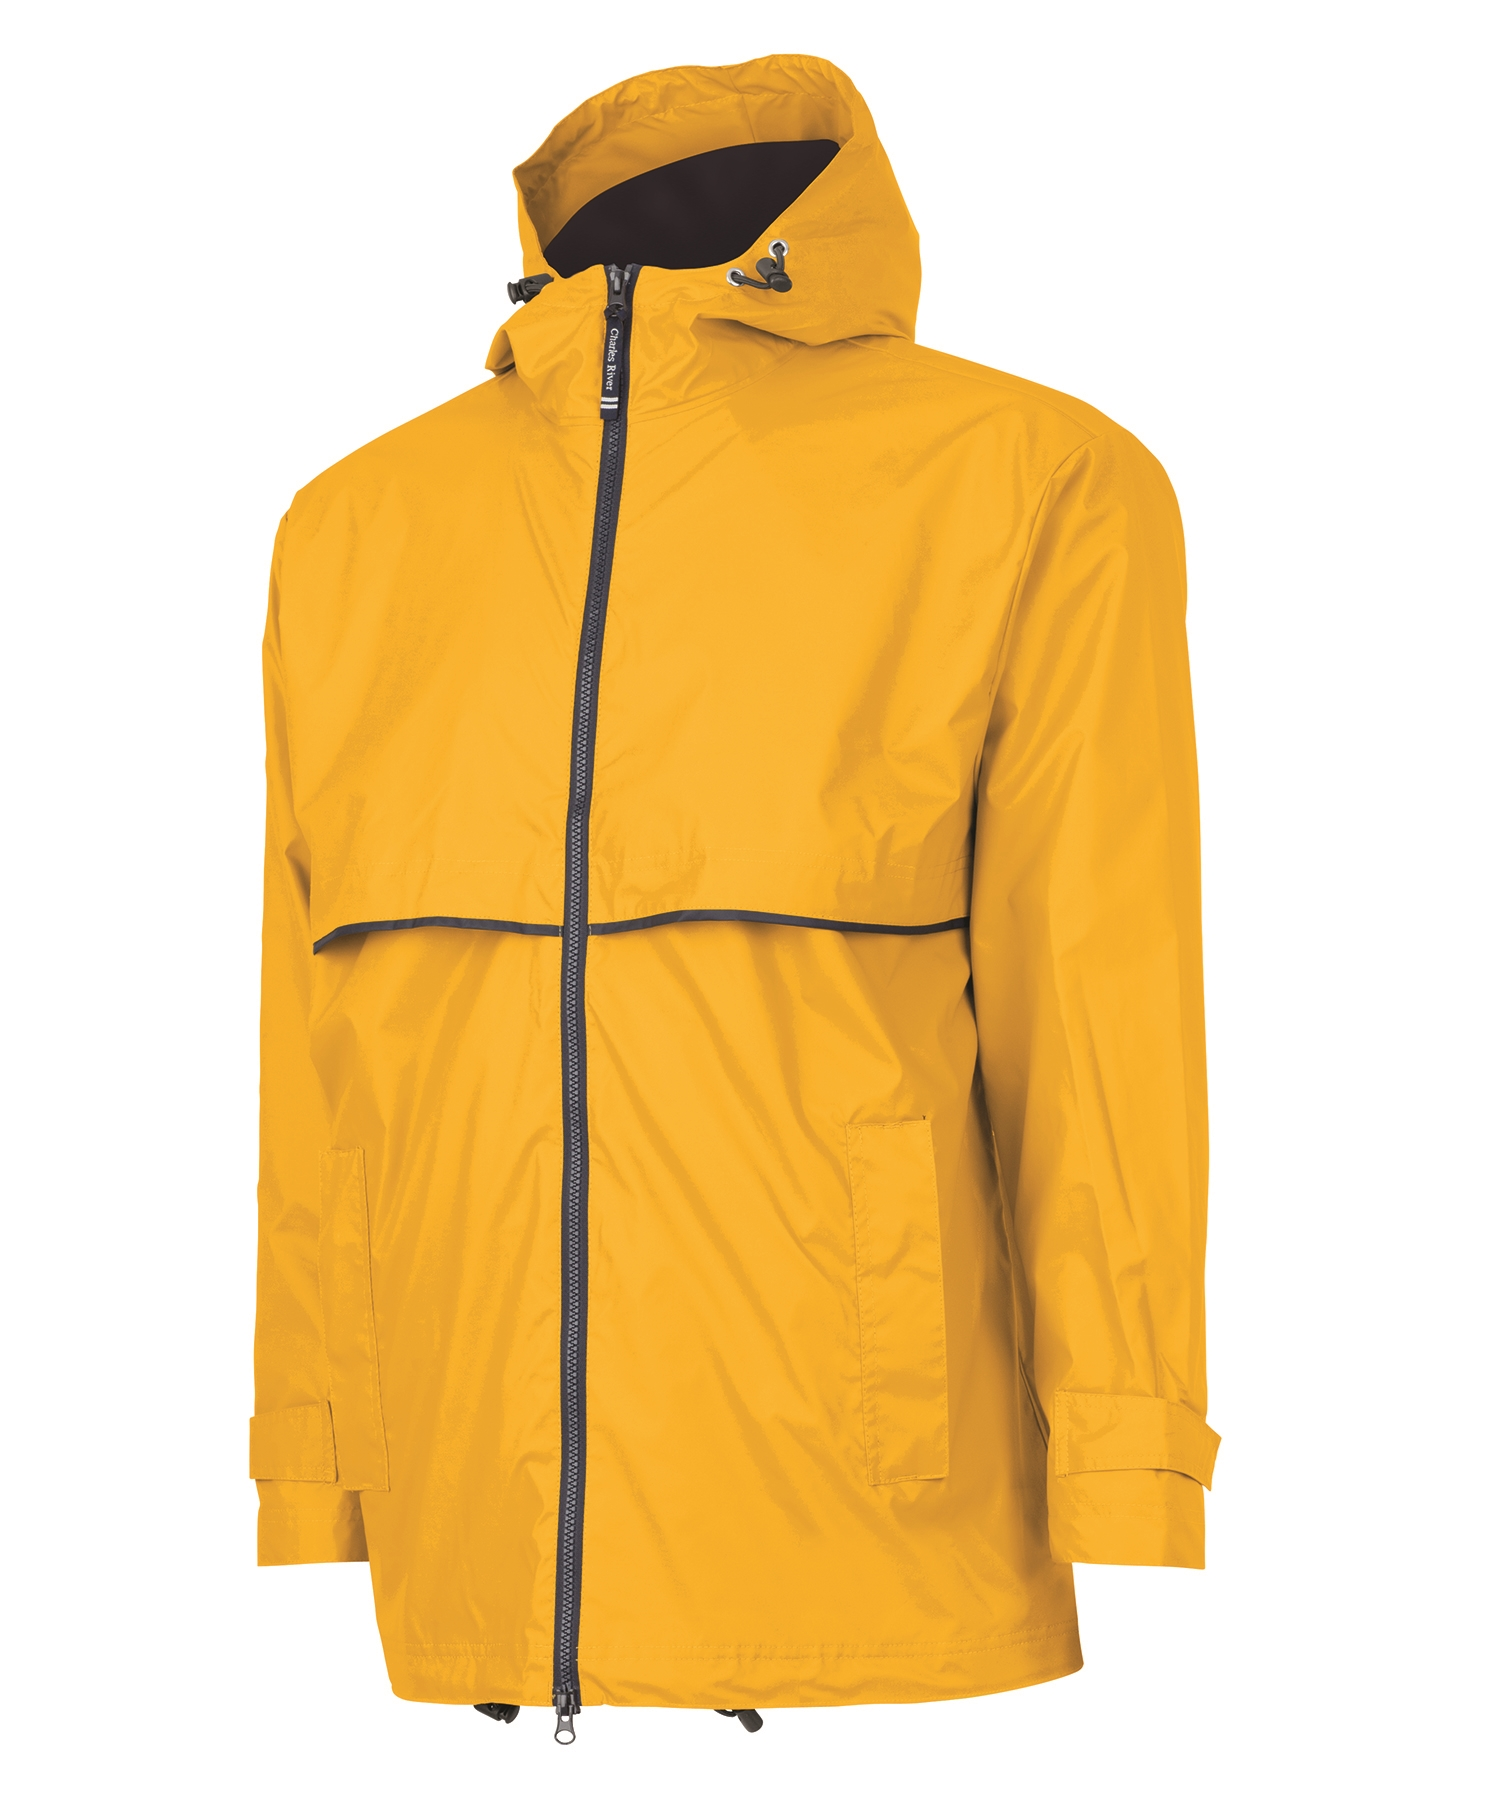 MLJCR9199-MENS NEW ENGLANDER RAIN JACKET ADULT XSM-5XL